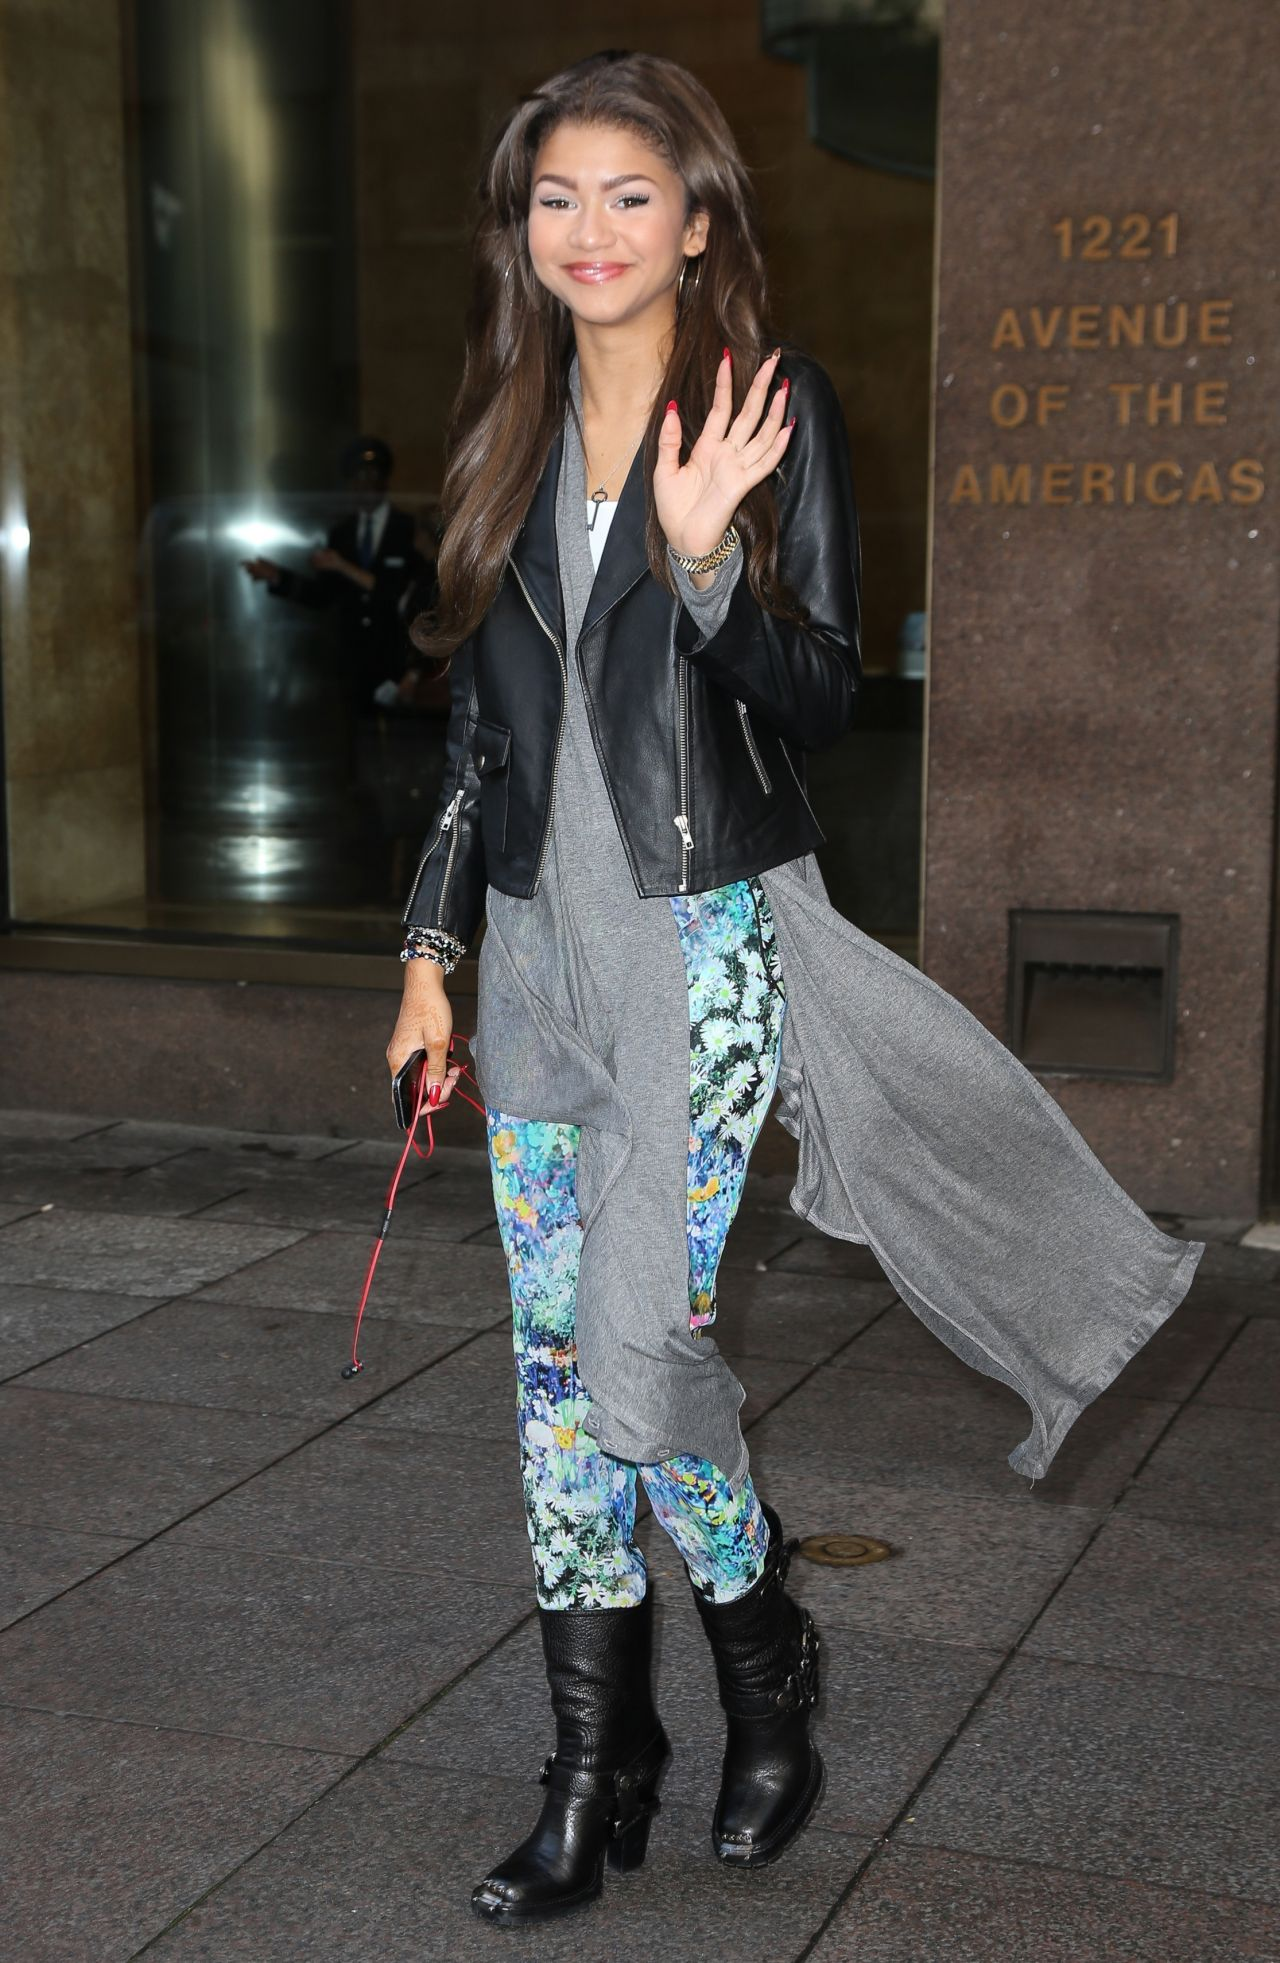 Zendaya Coleman Street Style - in New York, October 15, 2013